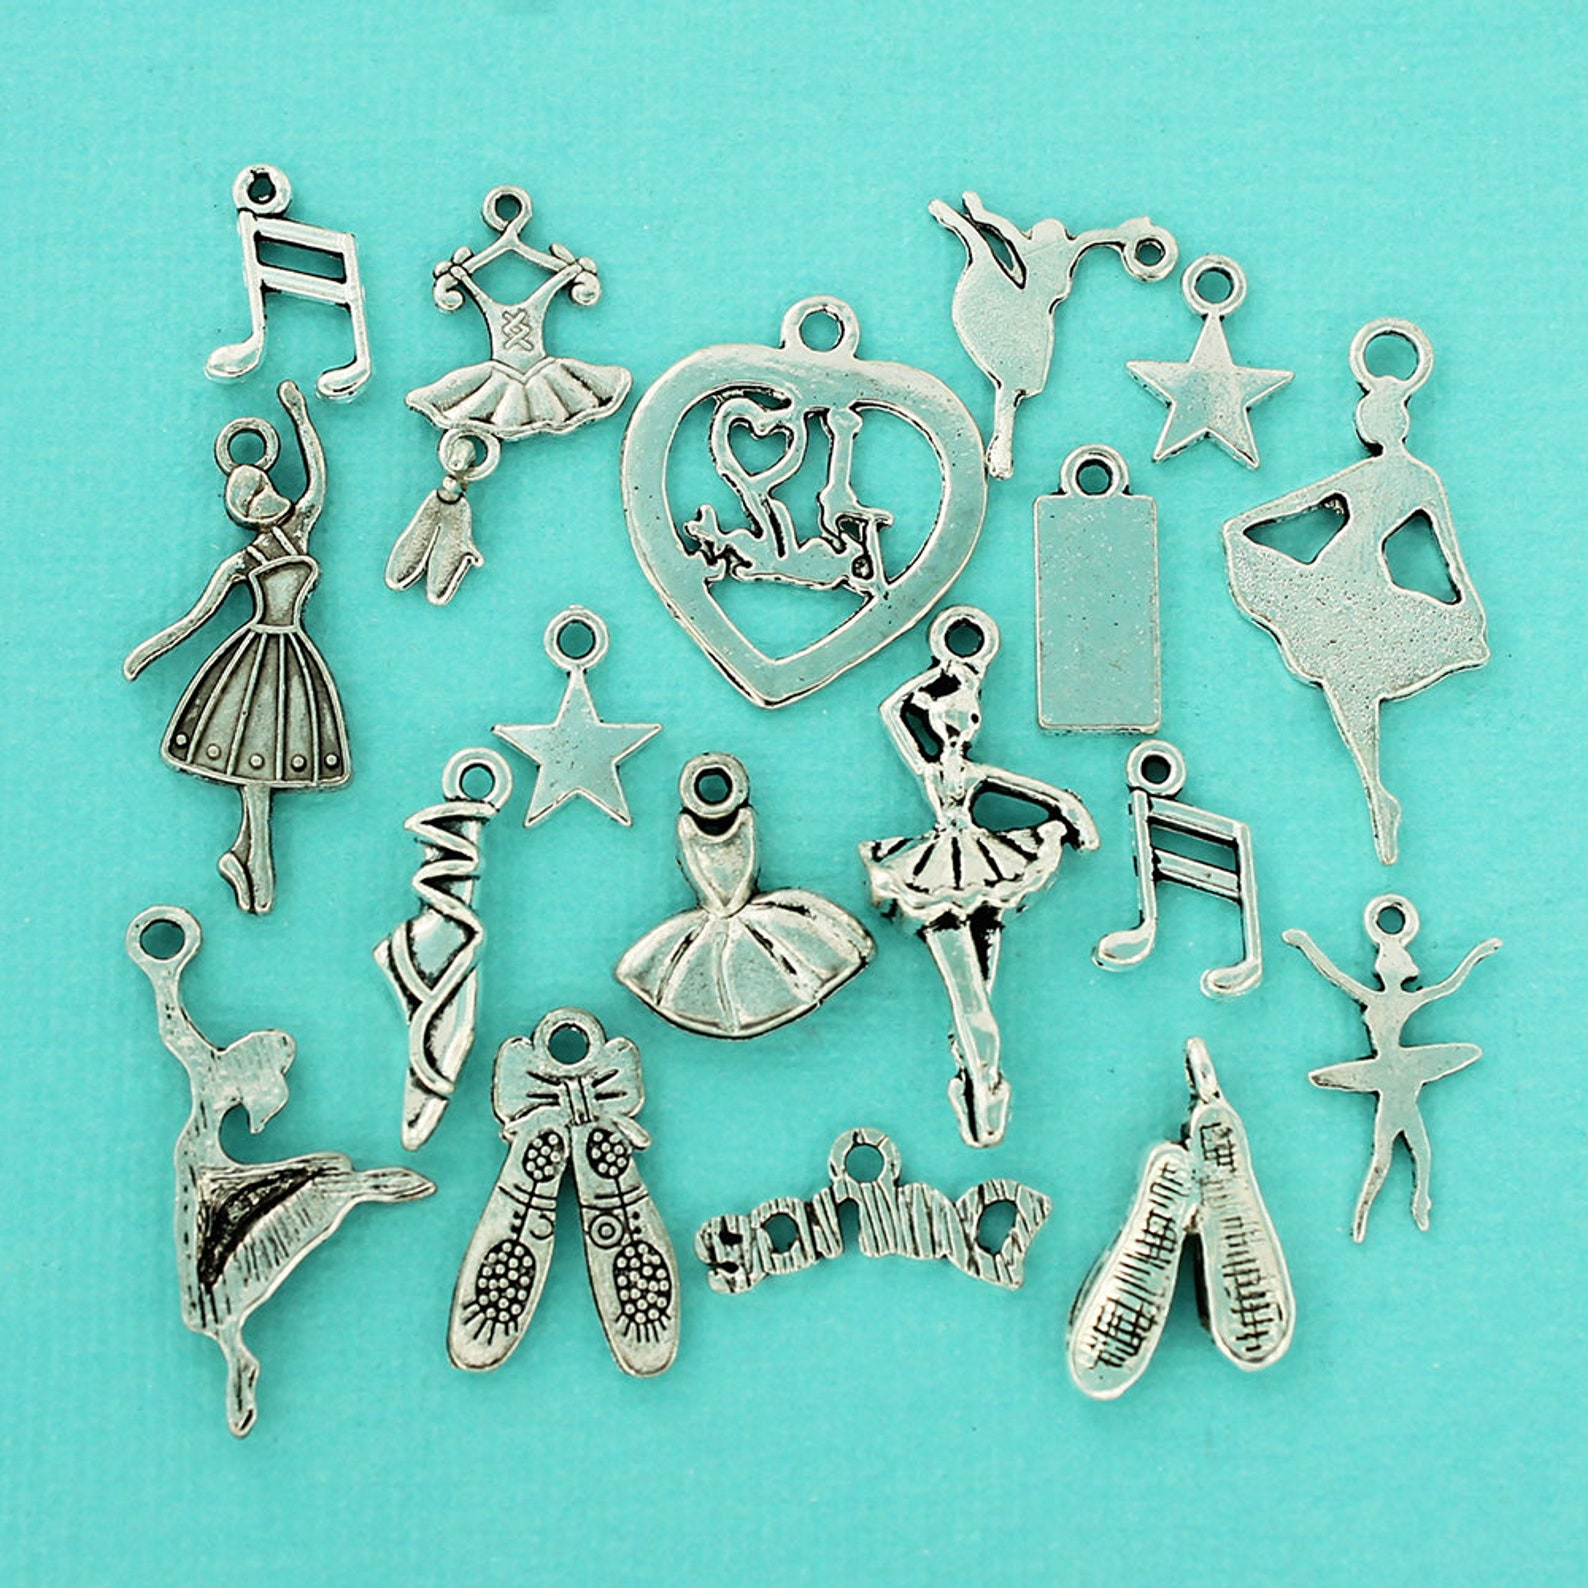 the ultimate ballet charm collection antique silver tone 18 different charms - col182